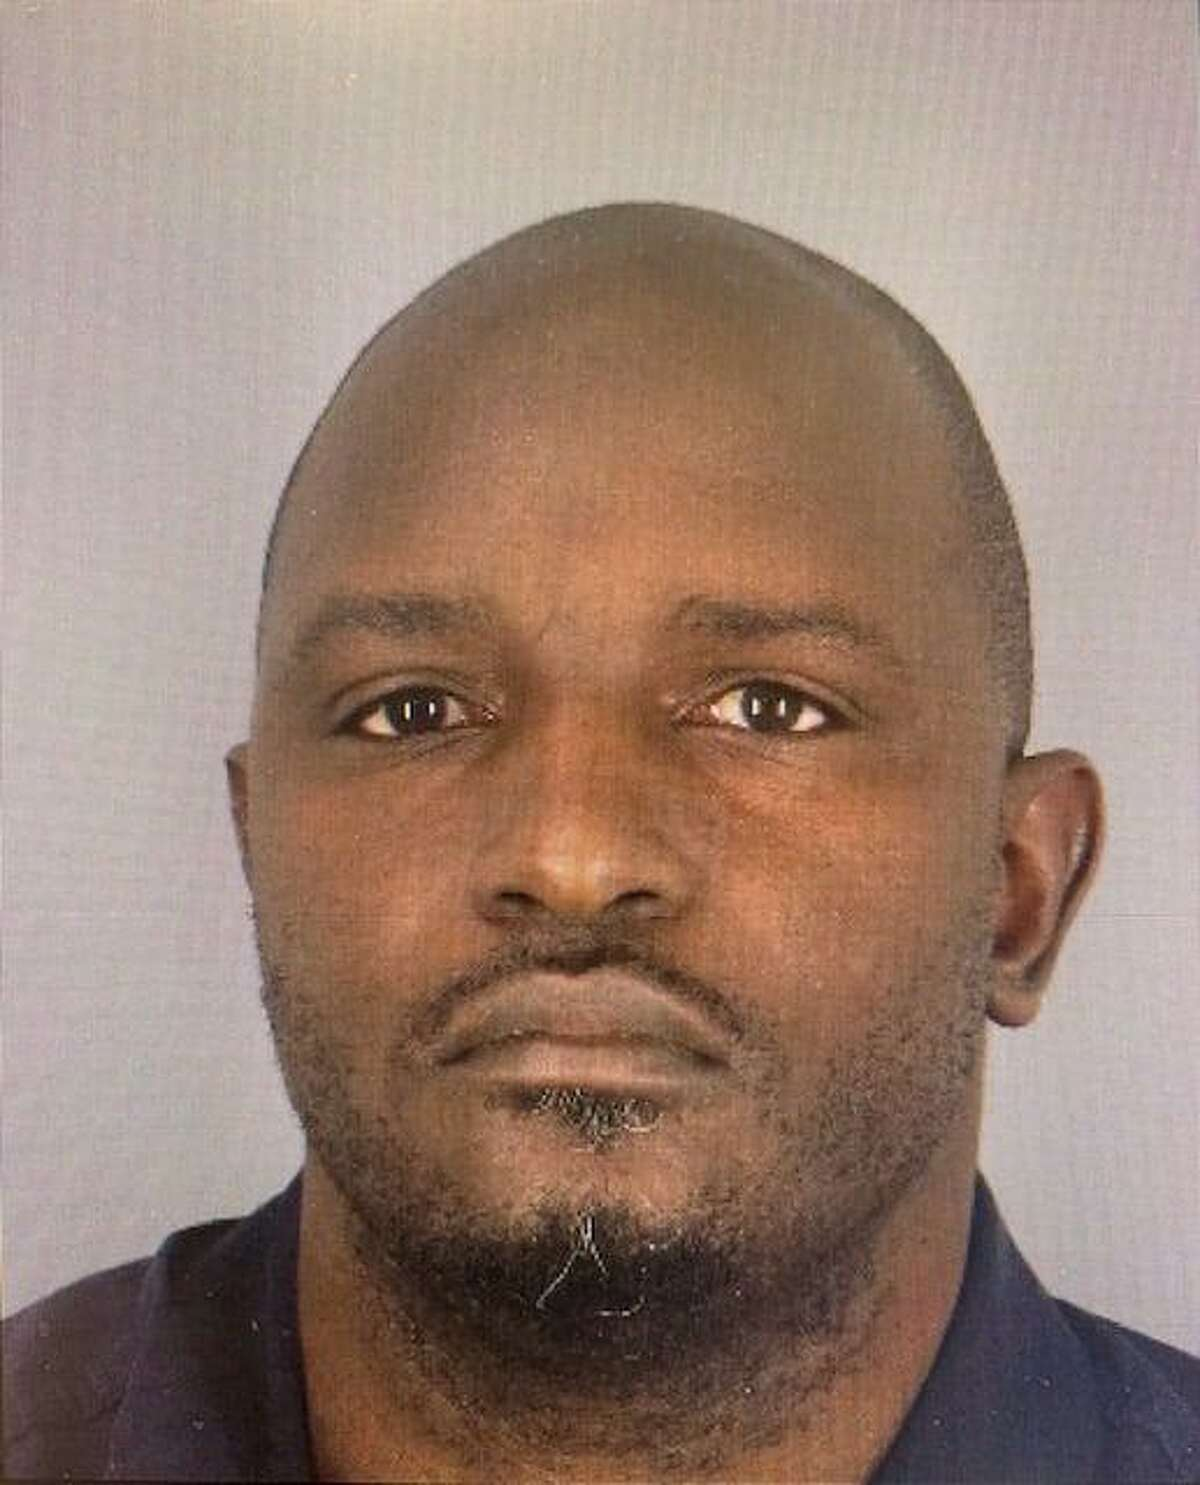 Law enforcement are looking for Robert Orlando Lake, a Beaumont man who escaped from the Jefferson County Correctional Facility around 6 p.m. Friday.